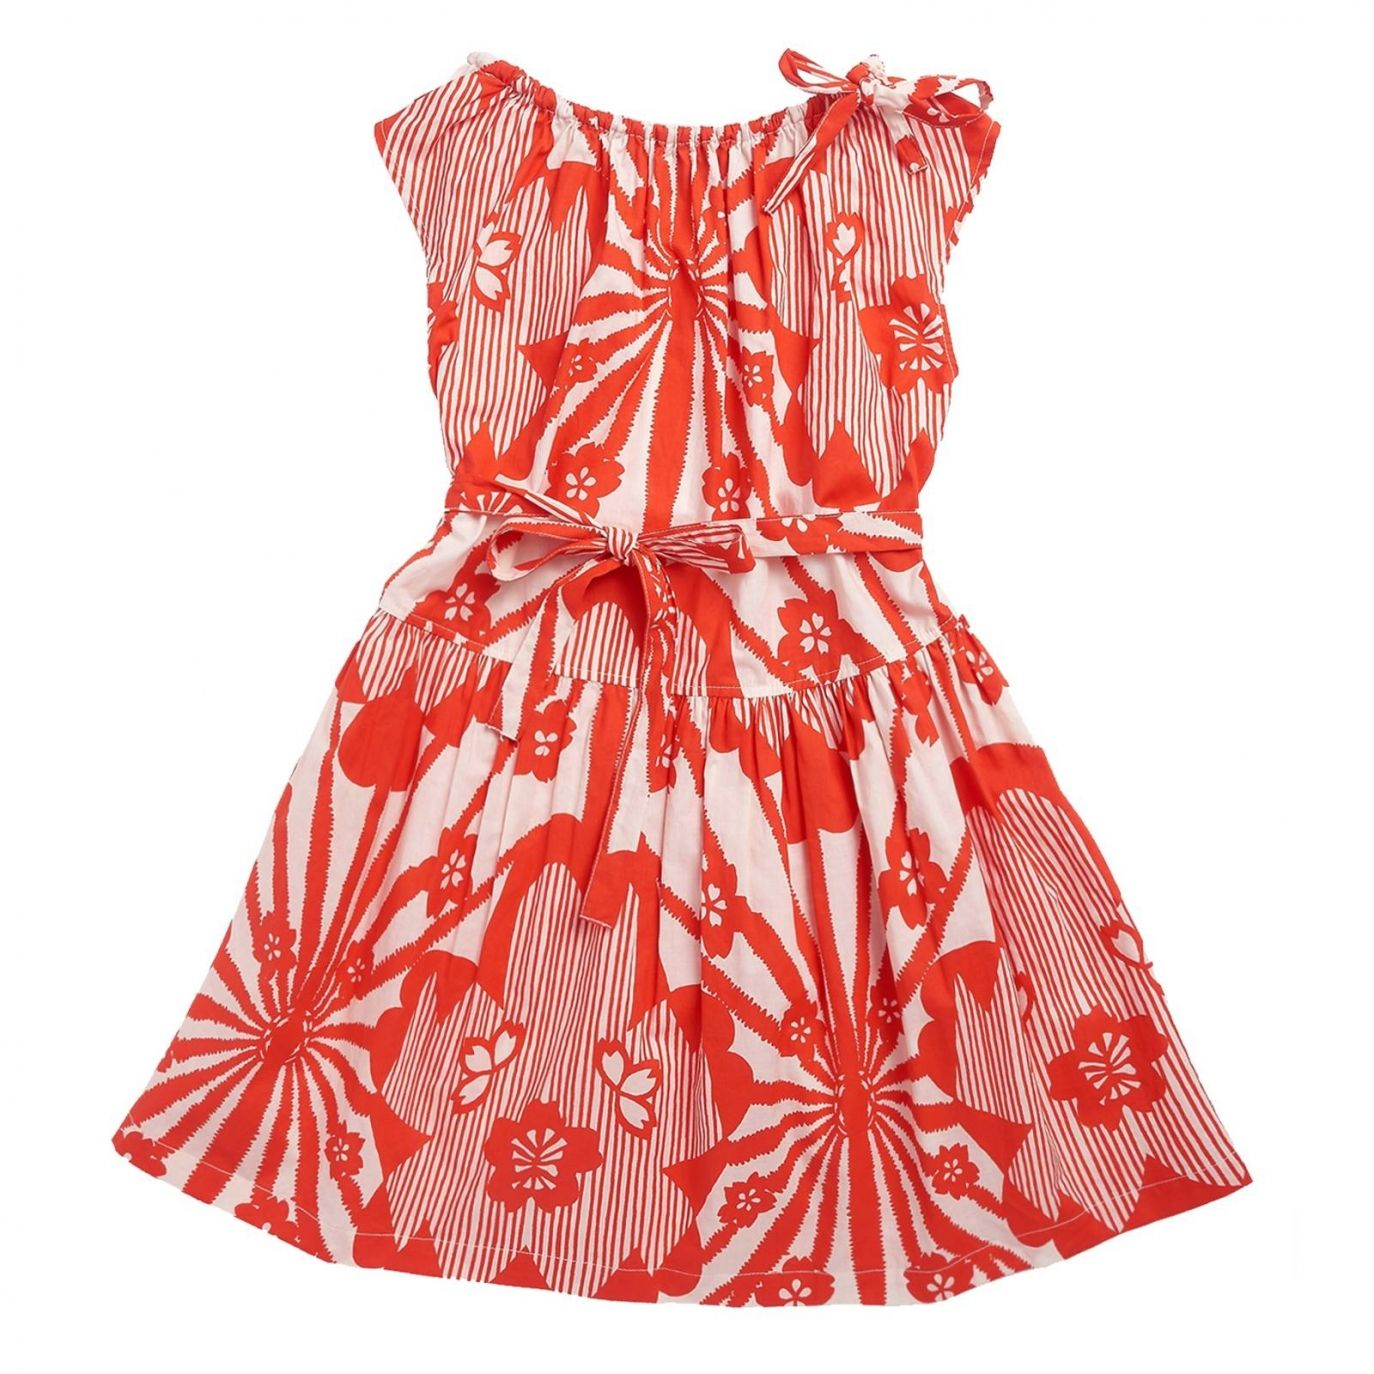 Caramel Baby & Child Dress Notting Hill Red